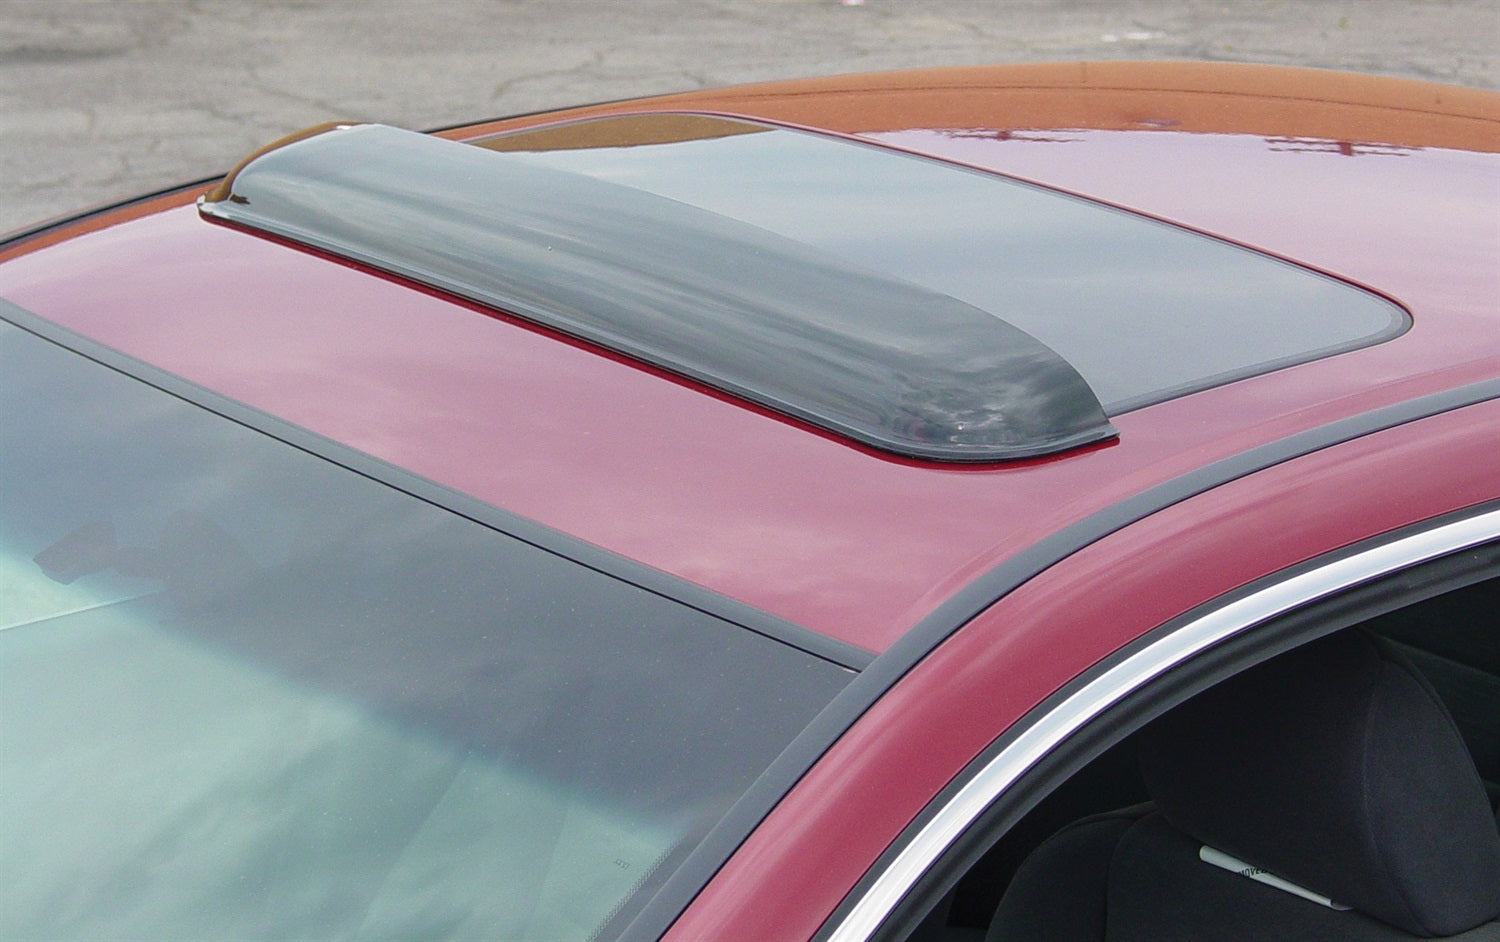 1995 Nissan 200SX Sunroof Wind Deflector